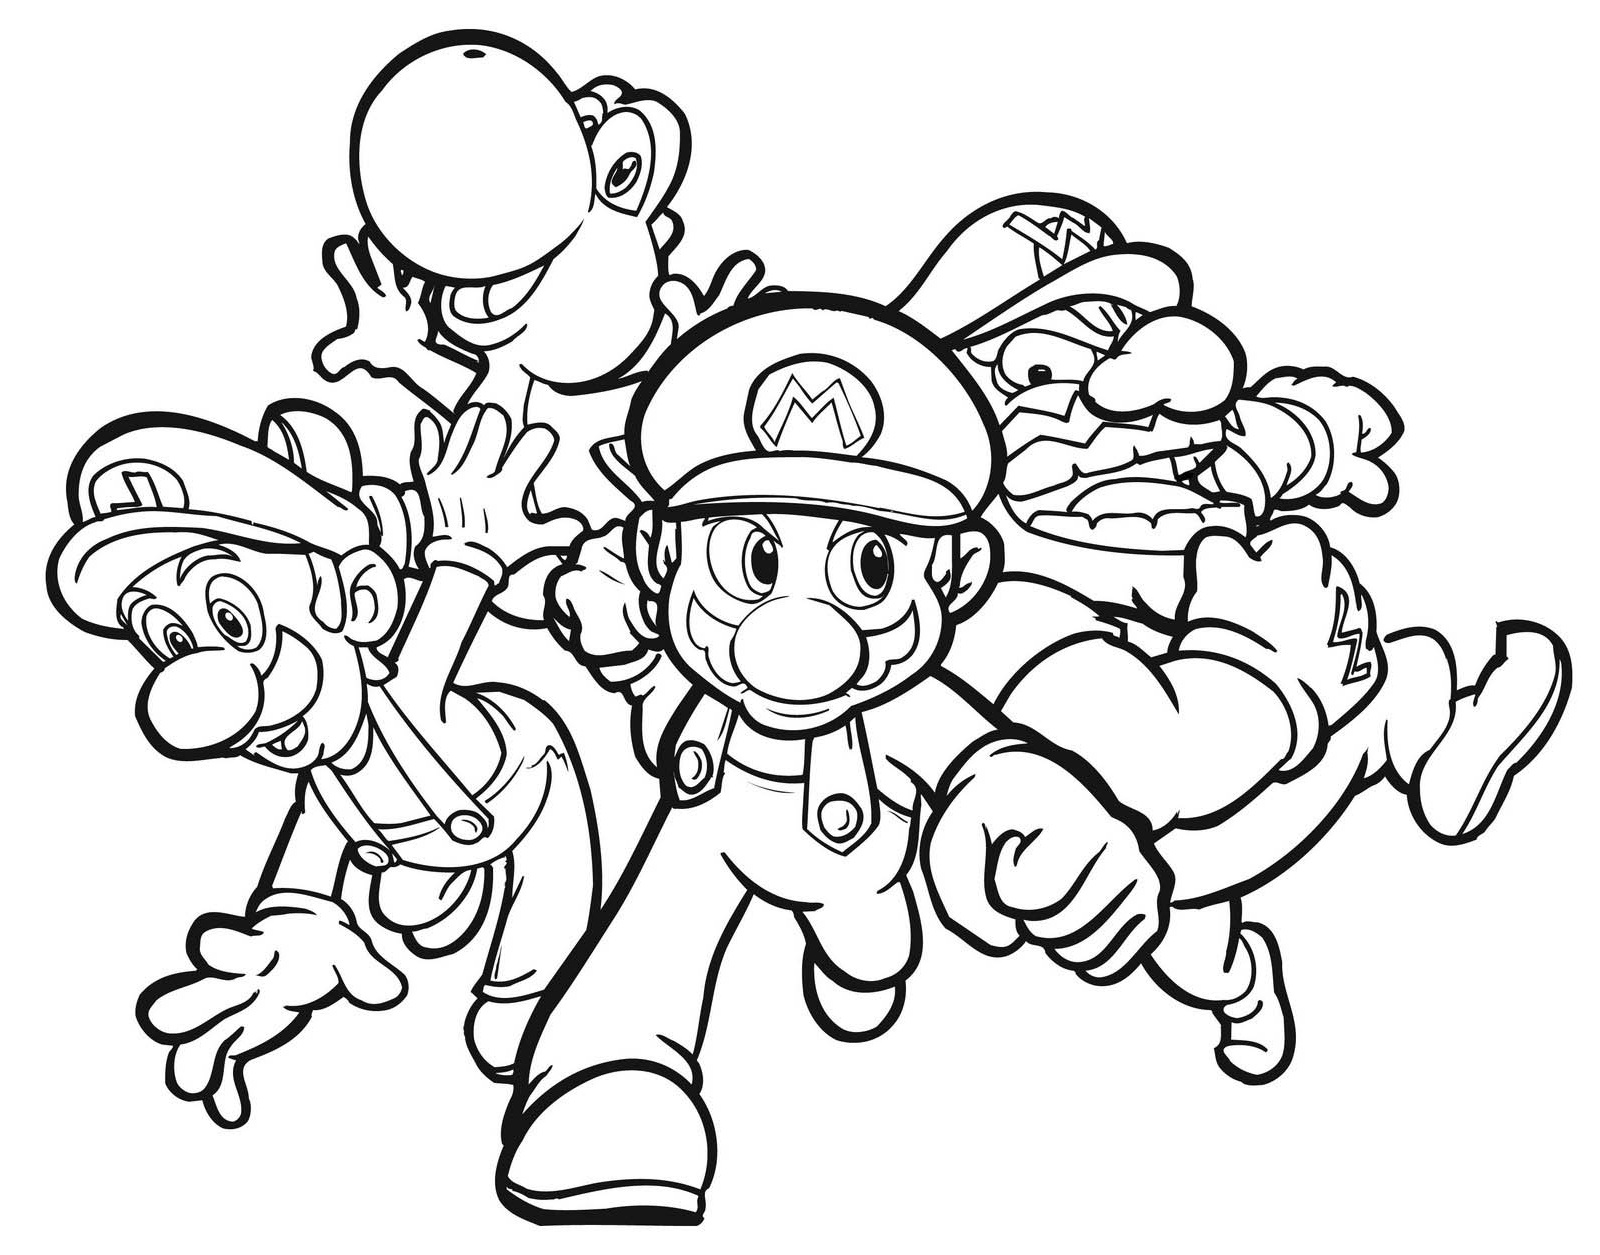 1600x1255 Colouring Pages Of Mario Yoshi Luigi And Wario For Kids